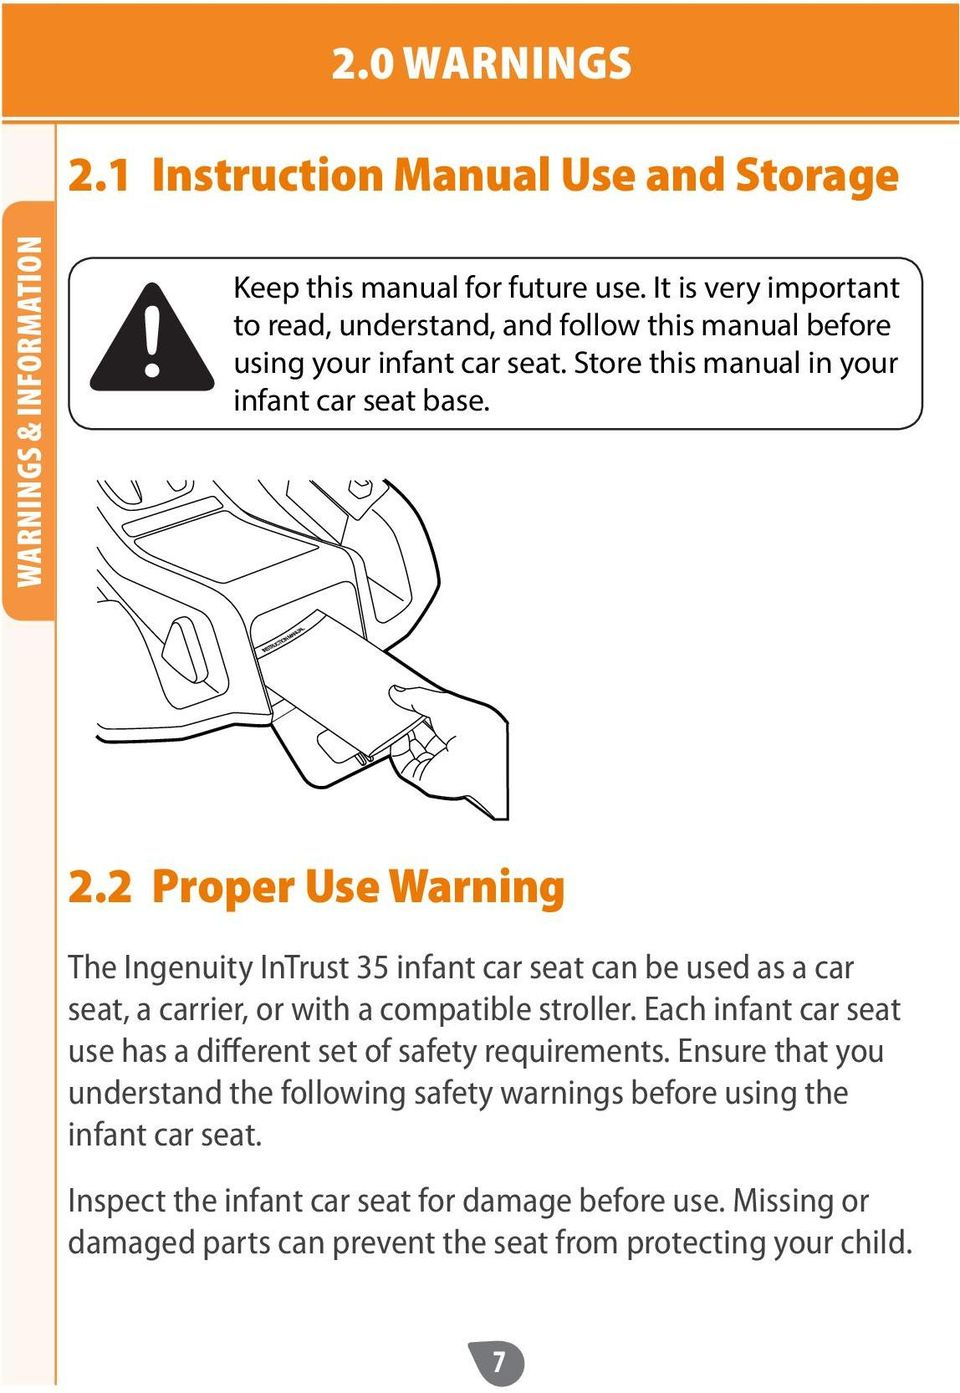 2 Proper Use Warning The Ingenuity InTrust 35 infant car seat can be used as a car seat, a carrier, or with a compatible stroller. Each infant car seat use has a different set of safety requirements.